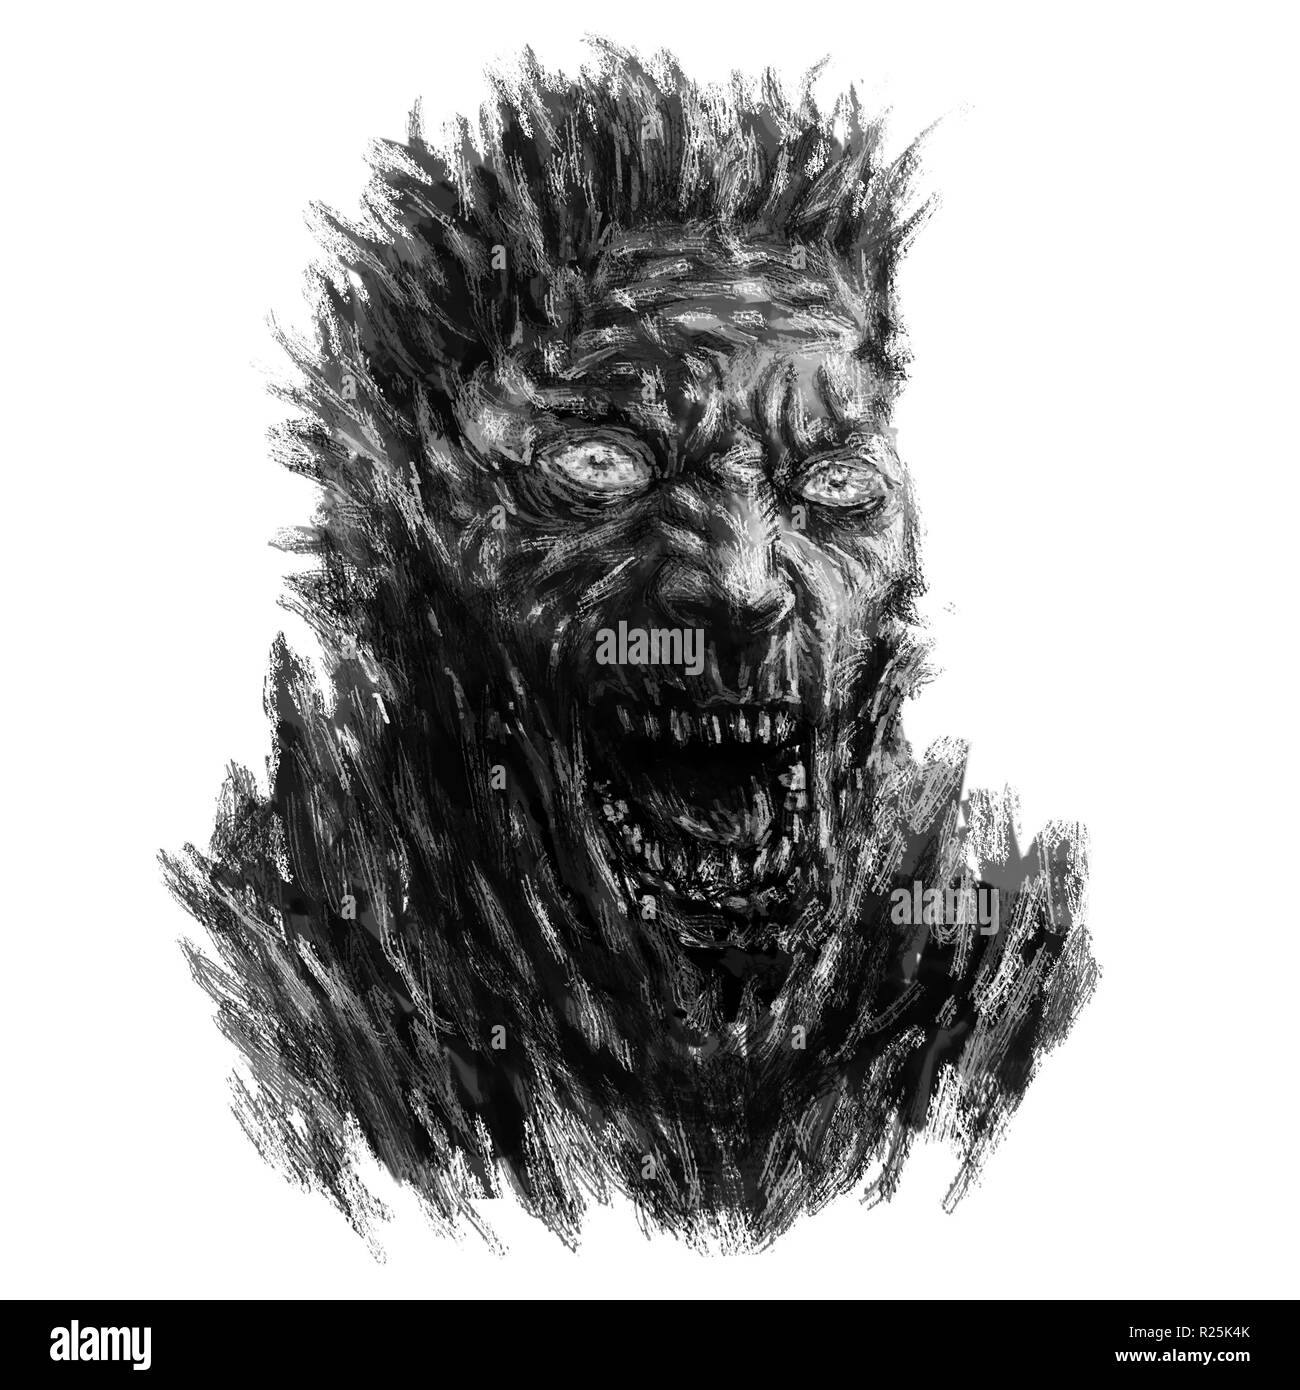 Angry zombie face concept. Illustration in genre of horror. Black and white color. - Stock Image